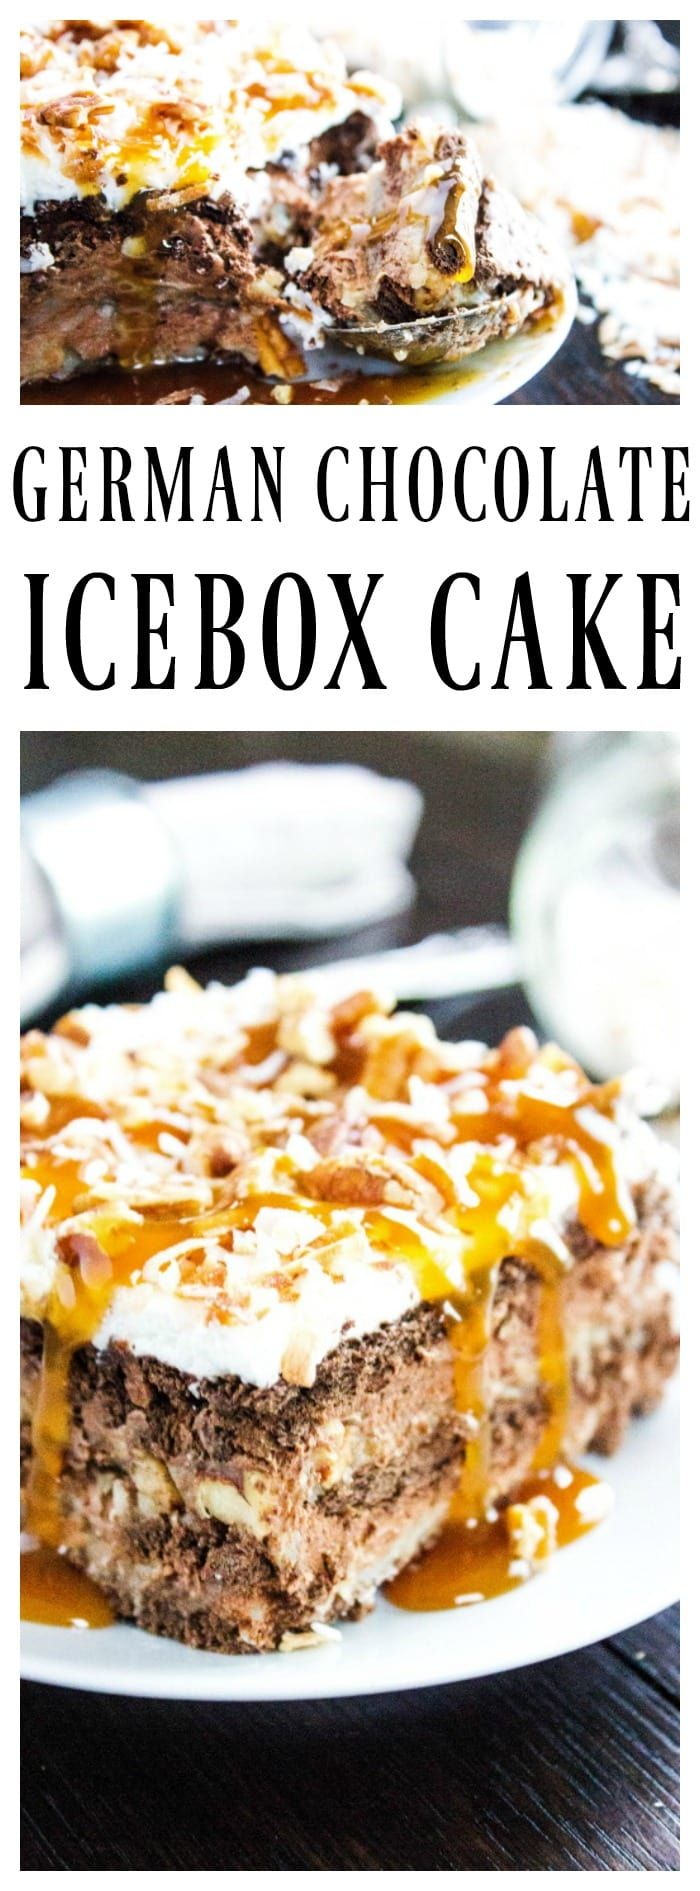 This is a sponsored conversation written by me on behalf of Tate+Lyle® Sugars . The opinions and text are all mine. GERMAN CHOCOLATE ICEBOX CAKE – layers of homemade German Chocolate Frosting, rich & creamy chocolate mousse and chocolate graham crackers topped with homemade whipped cream, pecans and toasted coconut. Are you drooling yet? If …